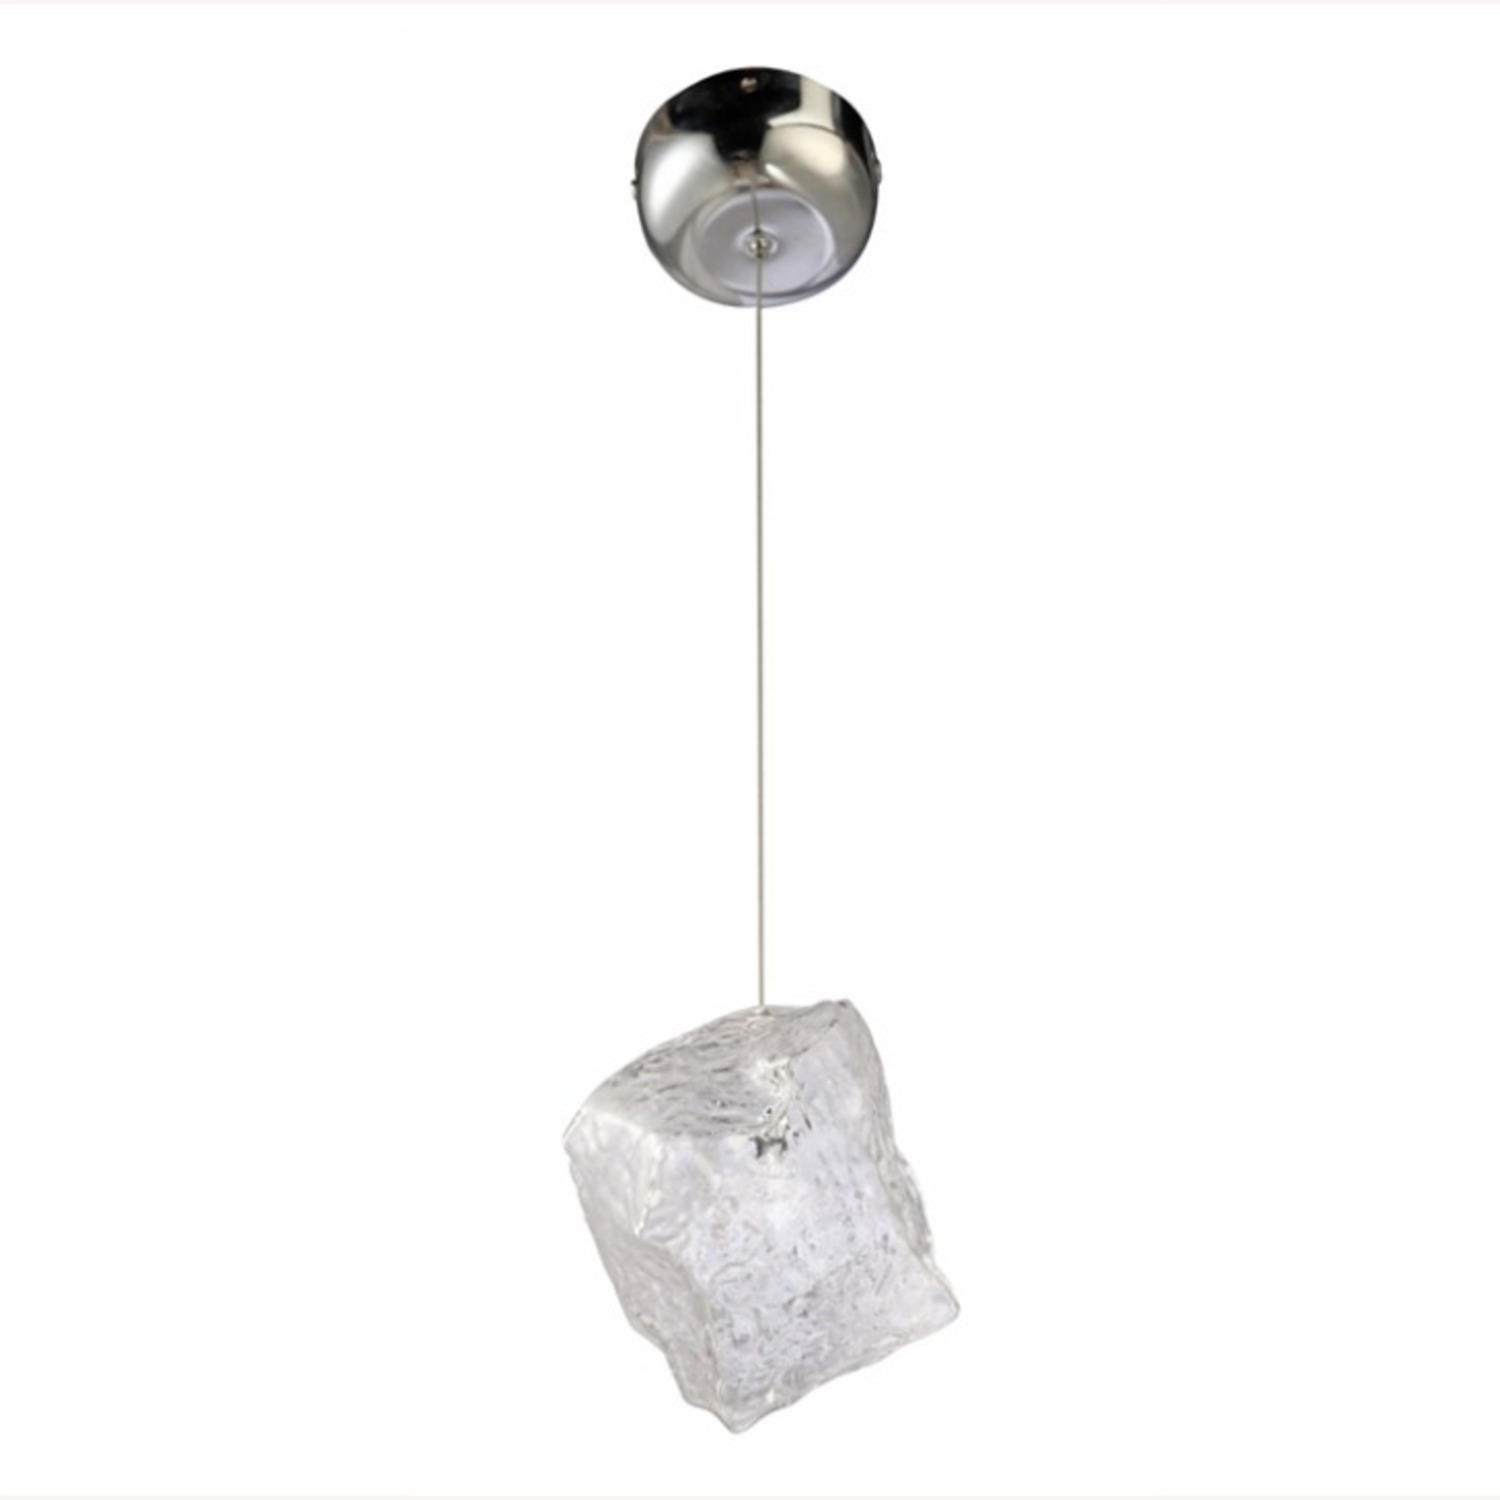 Lamp In Clear Glass Ice Pendant Design - image-0